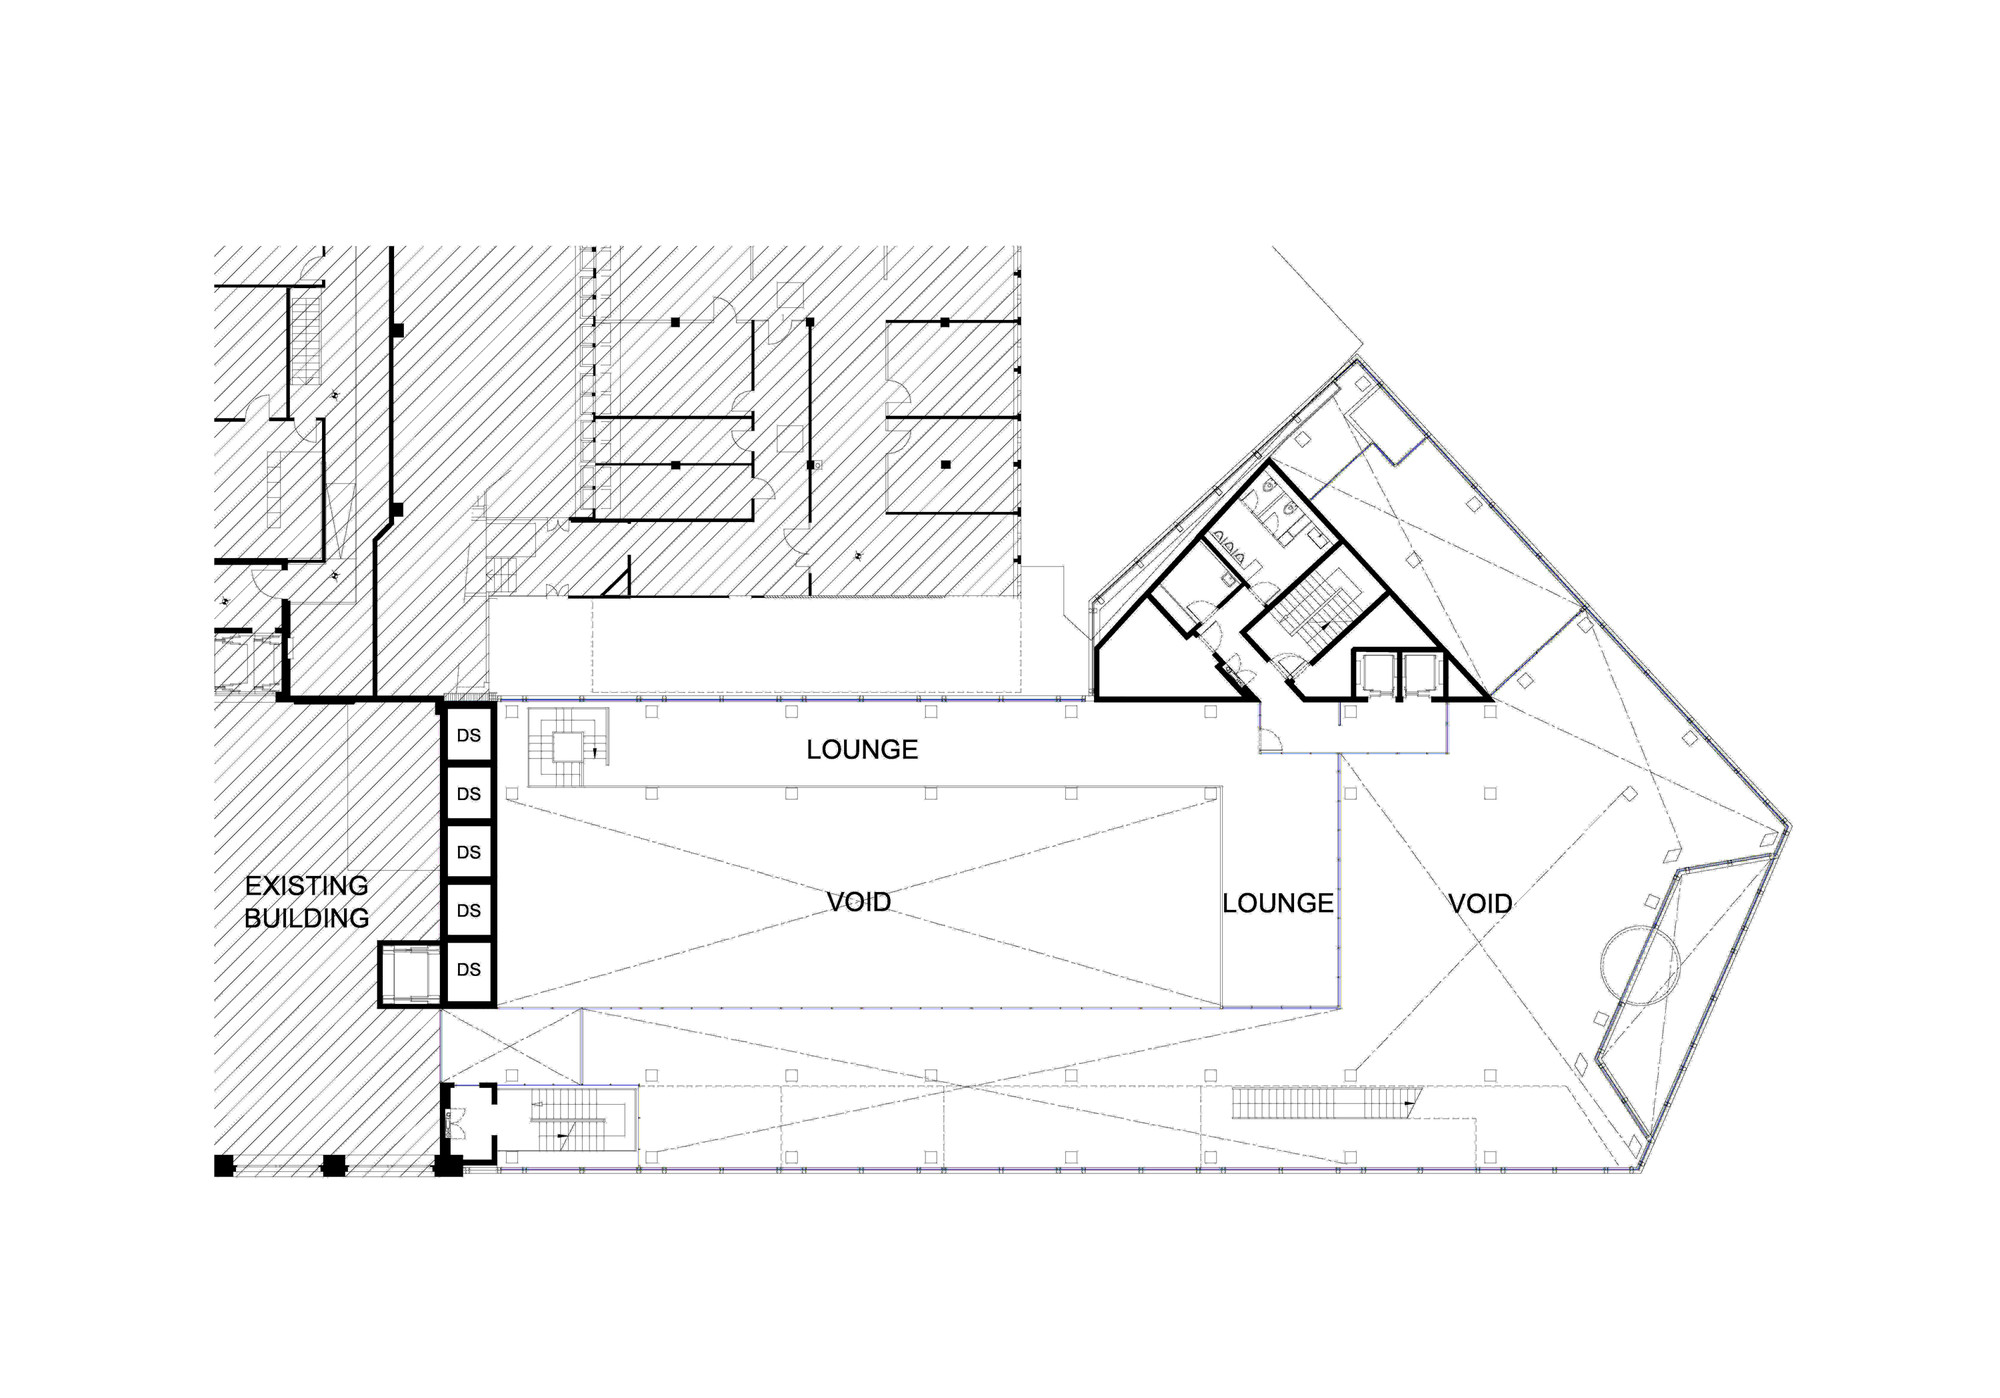 Mezzanine Floor Elevation : Mezzanine floor plan gurus